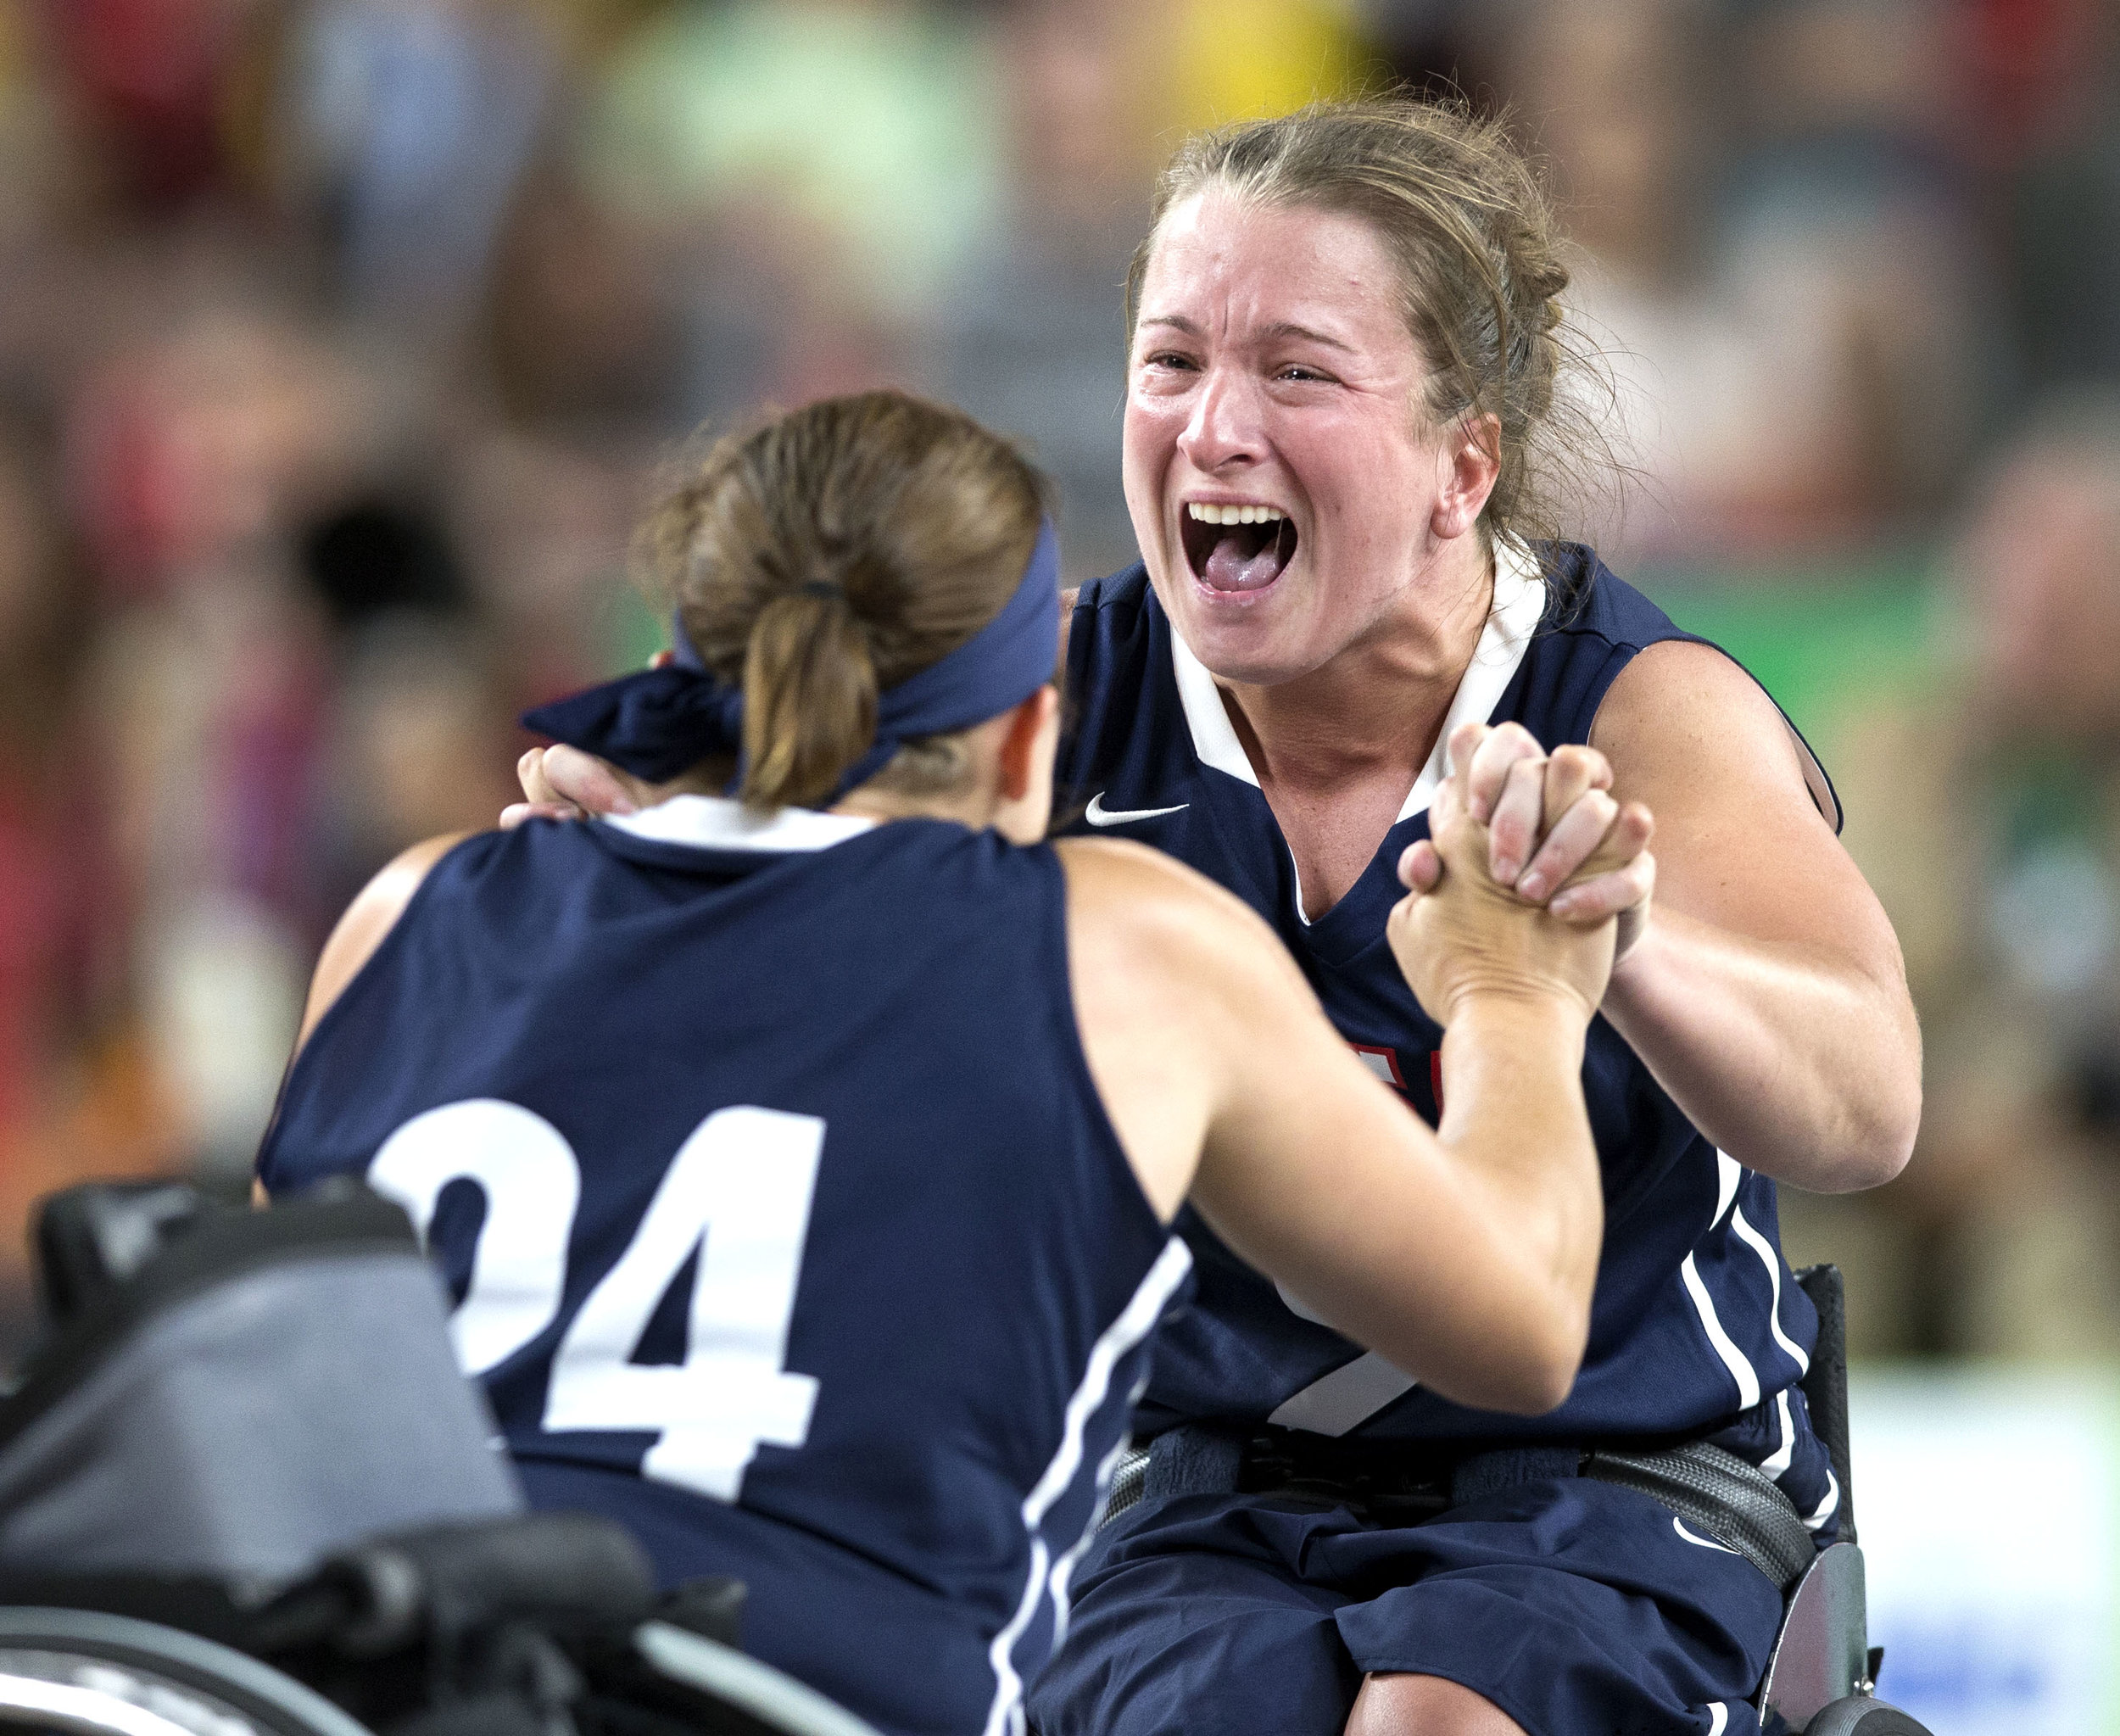 Gail Gaeng reacts after the U.S. team defeated Germany and won gold during the wheelchair basketball game at the 2016 Paralympic Games in Rio de Janeiro, Brazil, on Friday, Sept. 16, 2016.